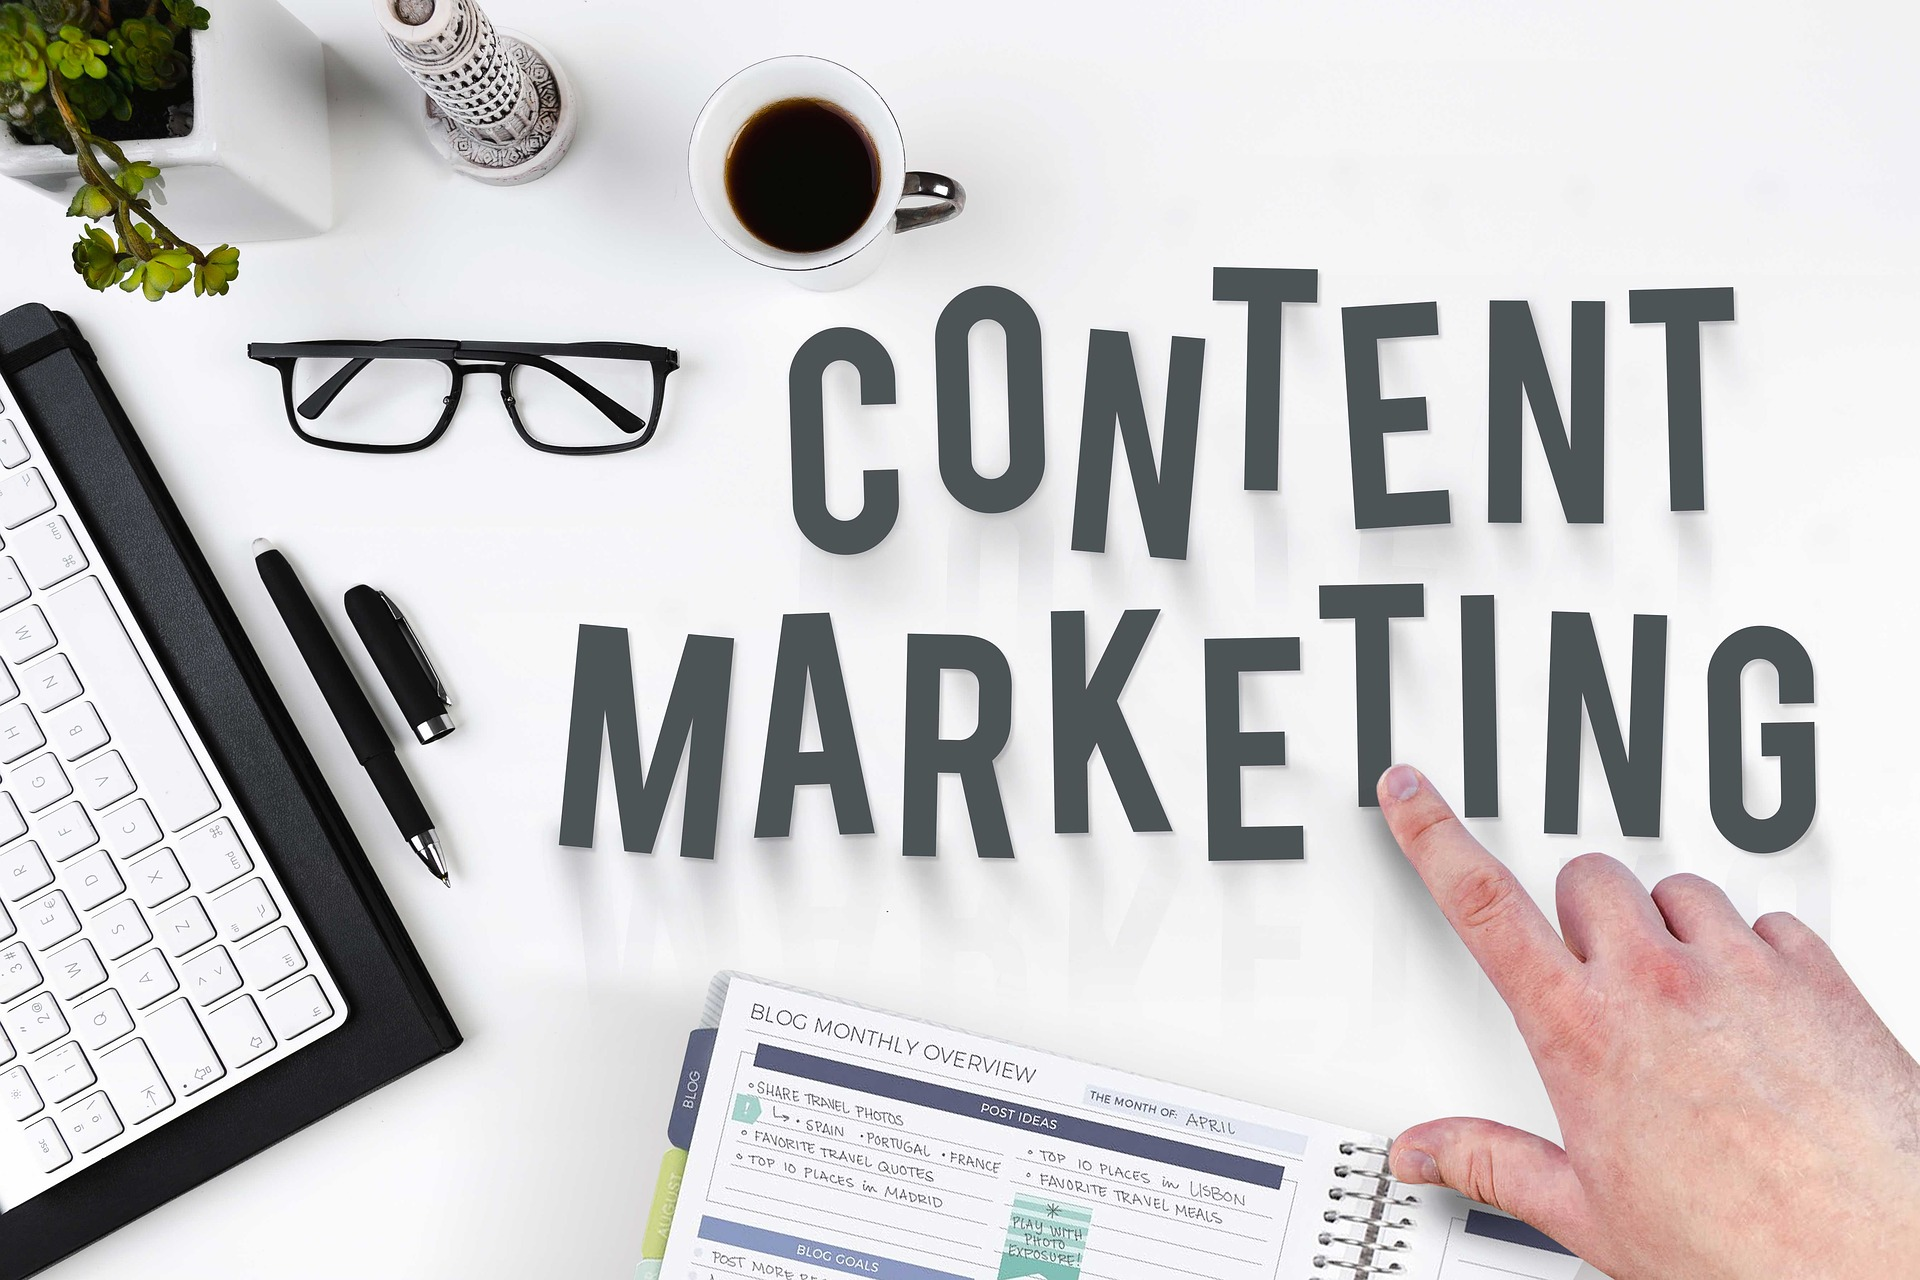 how to increase traffic by content marketing, Increase traffic, increase traffic by content, Increase traffic by content marketing, social media strategy, traffic by content marketing